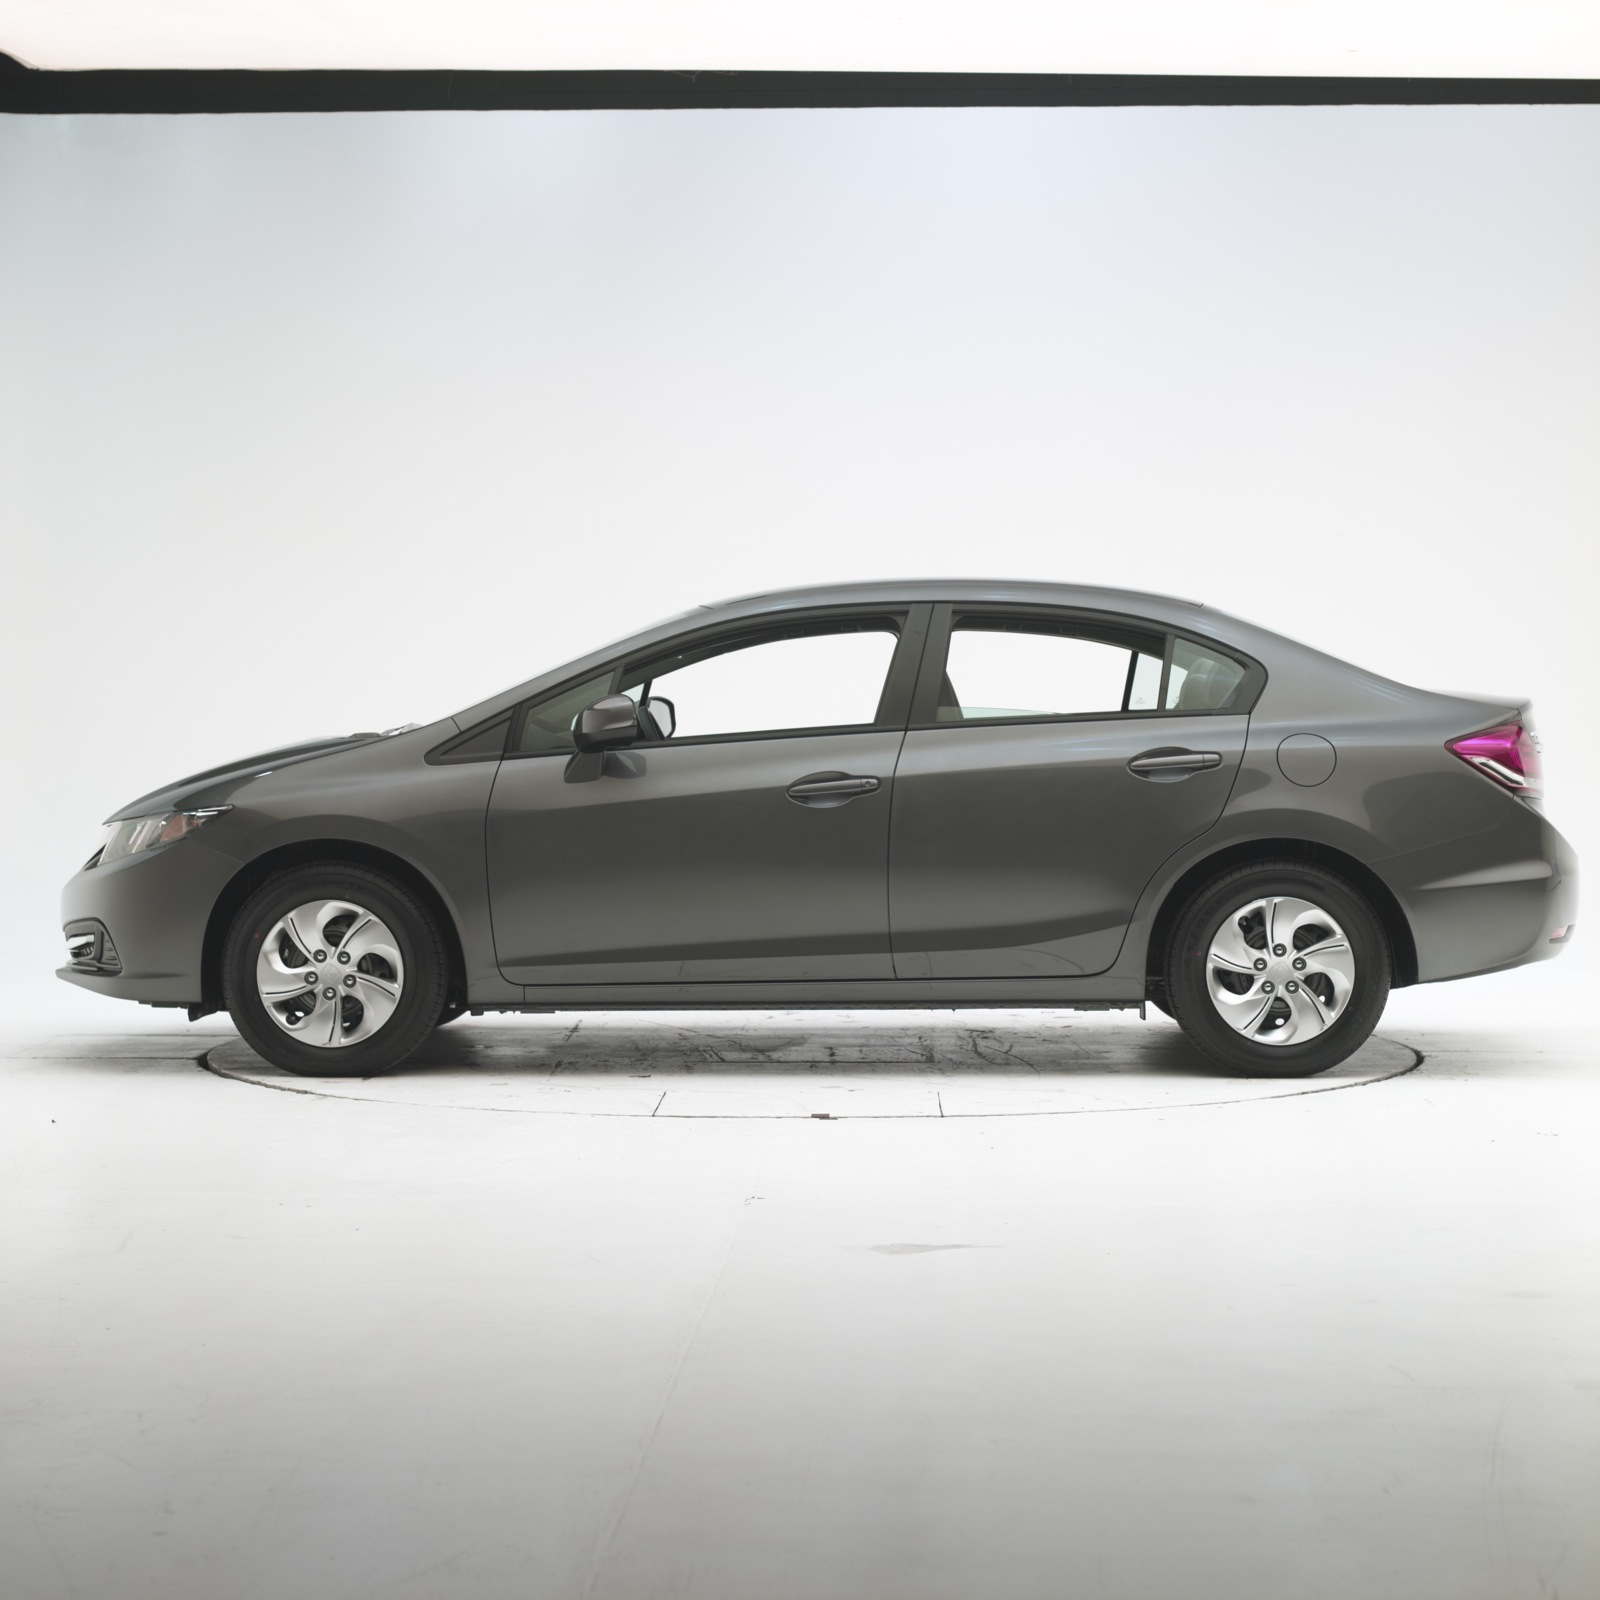 2013-honda-civic--good-in-iihs-small-overlap-frontal-test